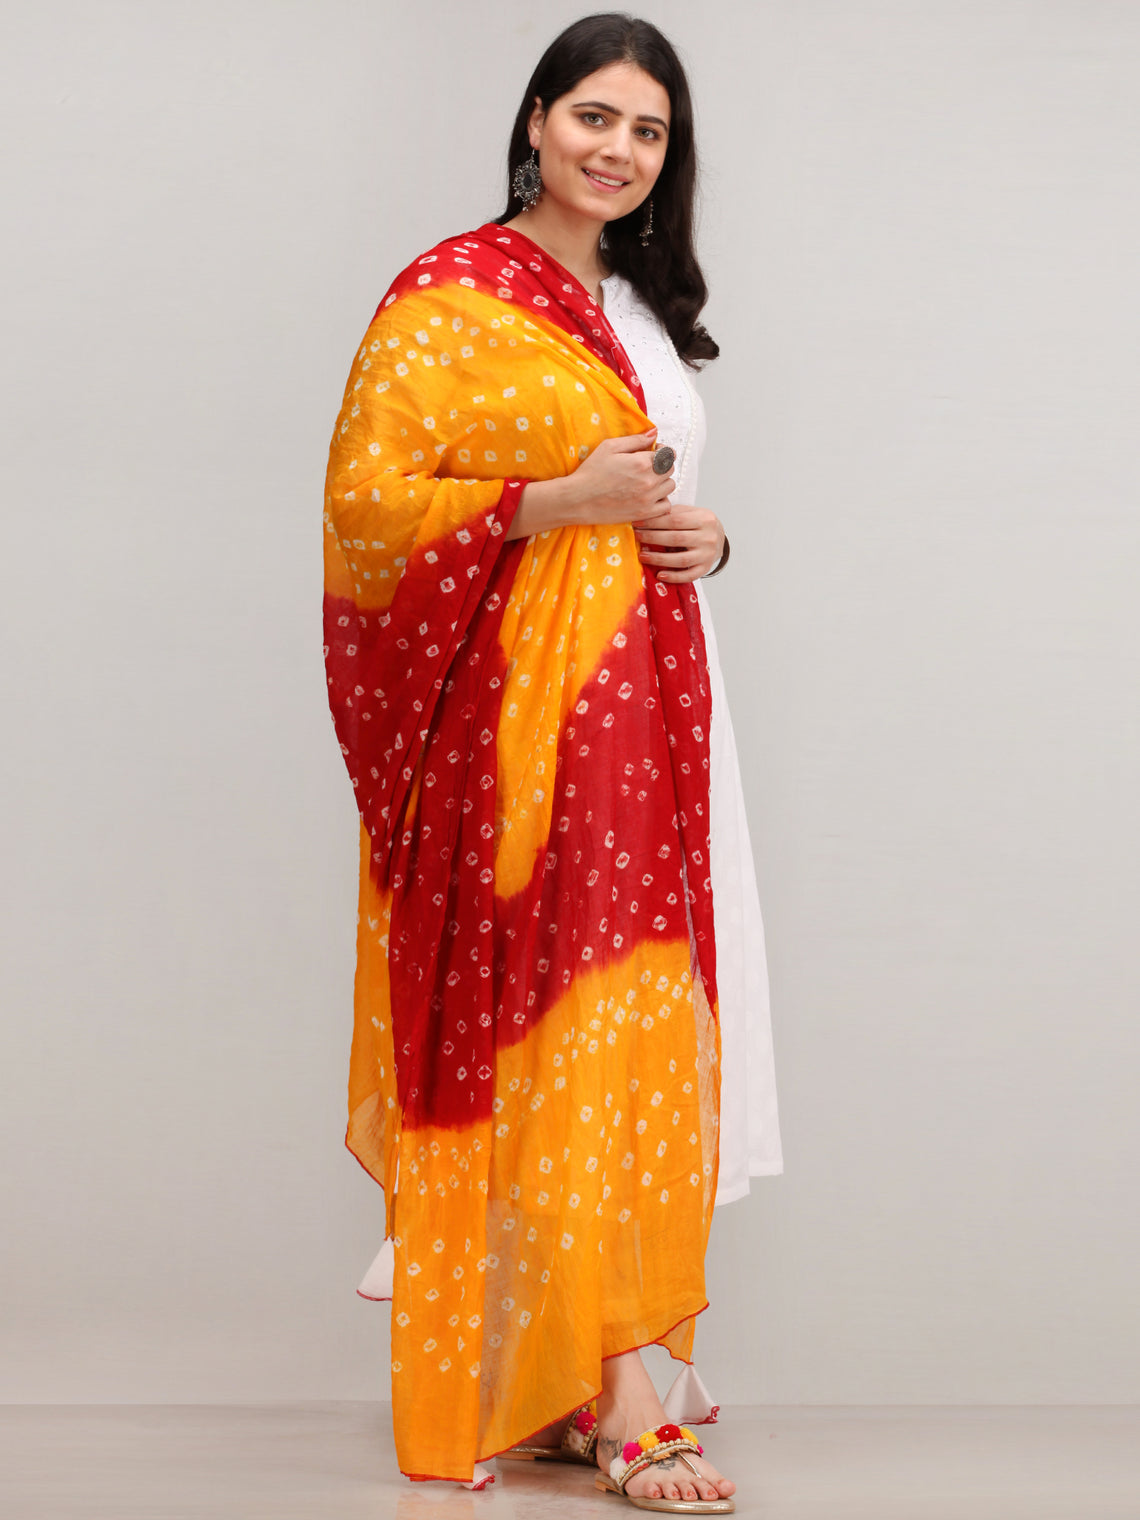 Noor Fariba - Self Emboss Work ALine Kurta Pant Set With Bandhini Dupatta - KS116AXXD10